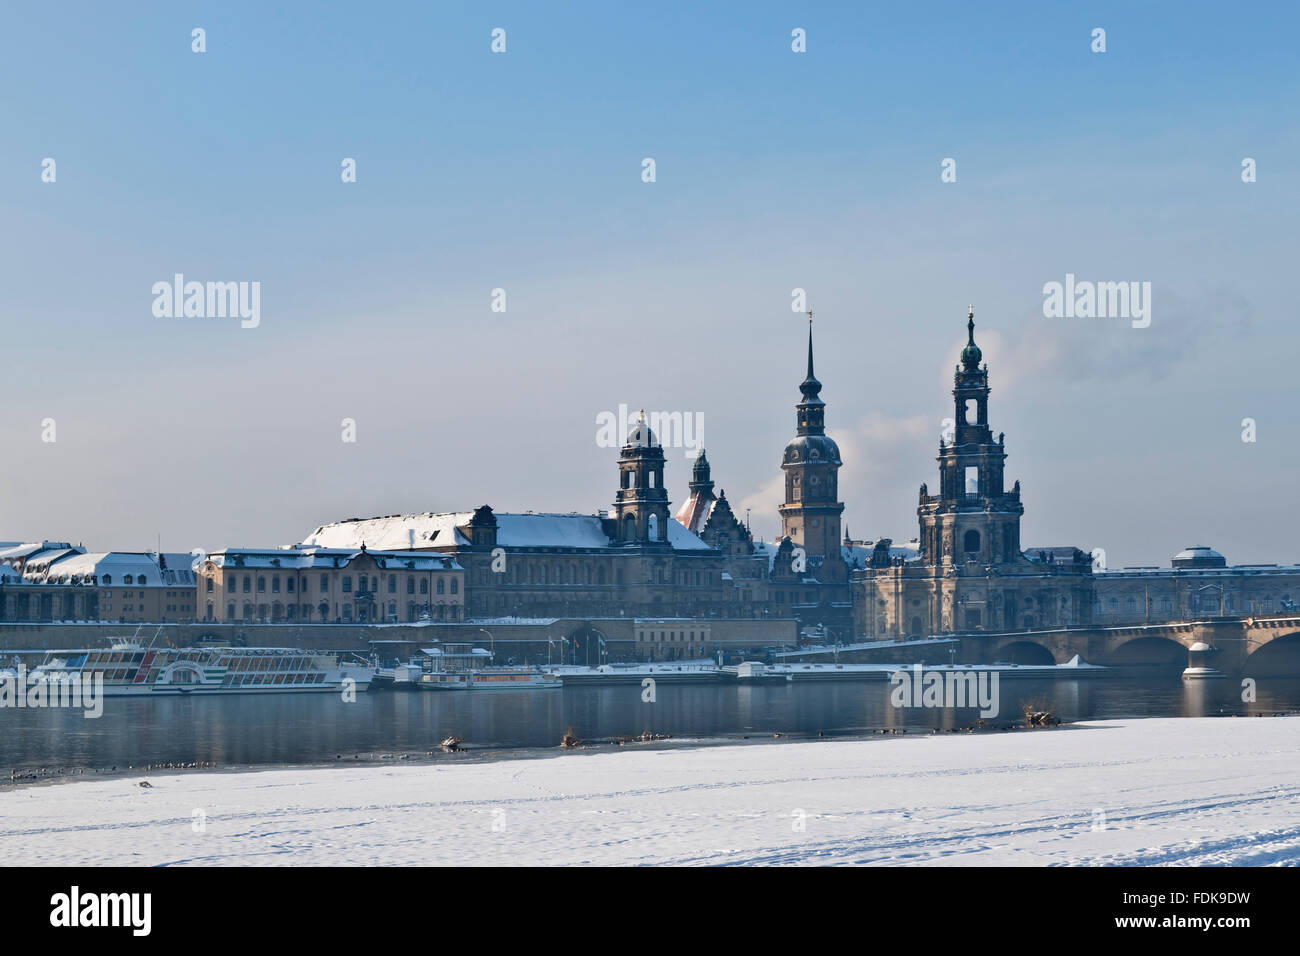 Kaminbauer Dresden Brühl Castle High Resolution Stock Photography And Images - Alamy